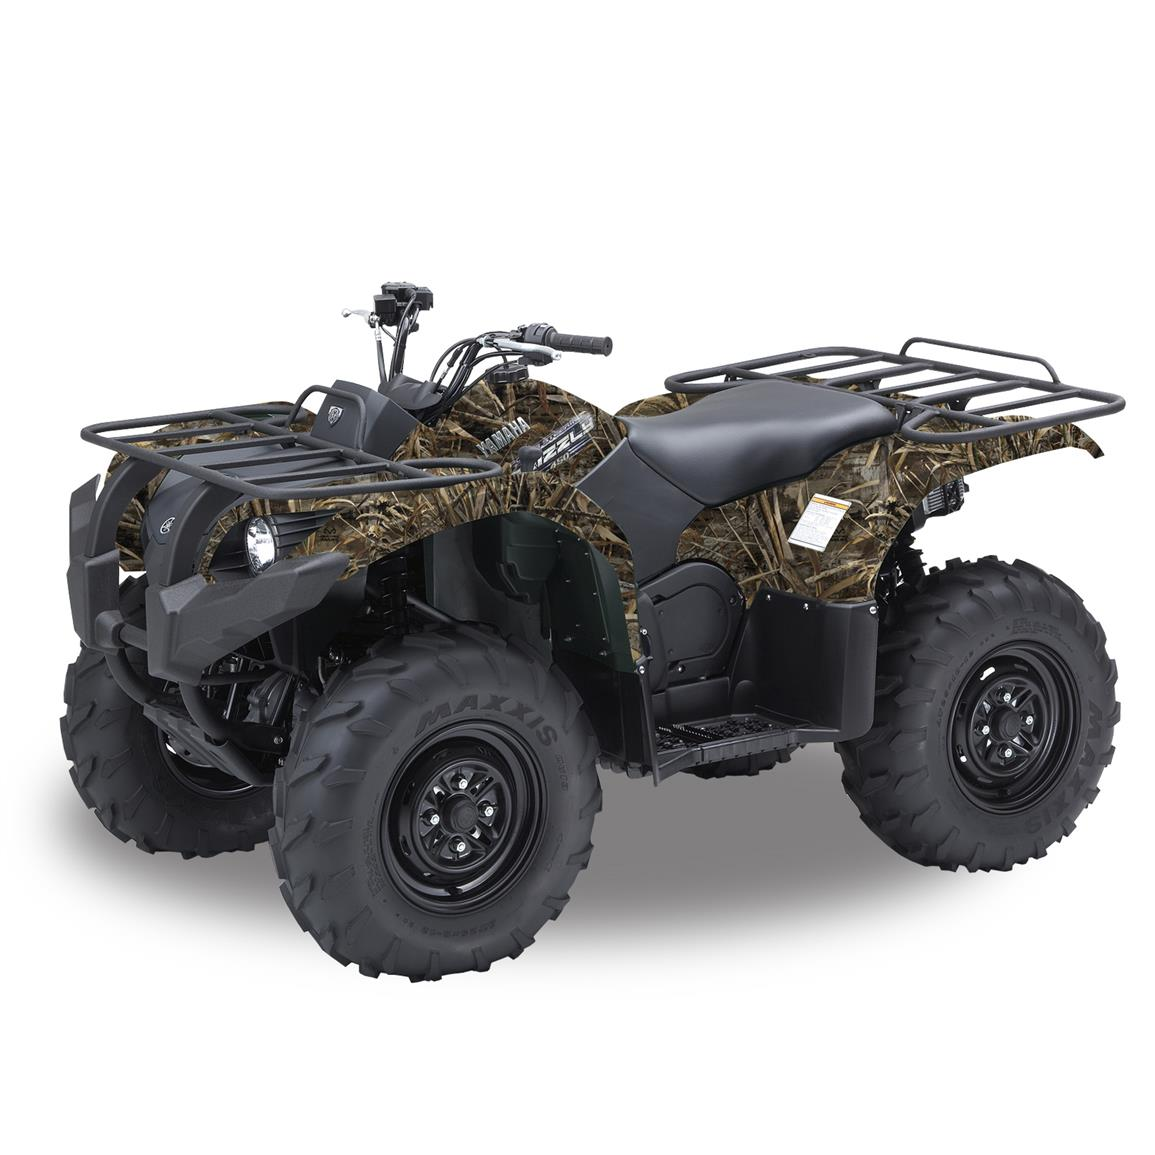 Realtree Camo Graphics ATV Camo Kit, 40 Square Feet, Realtree Max-5 HD